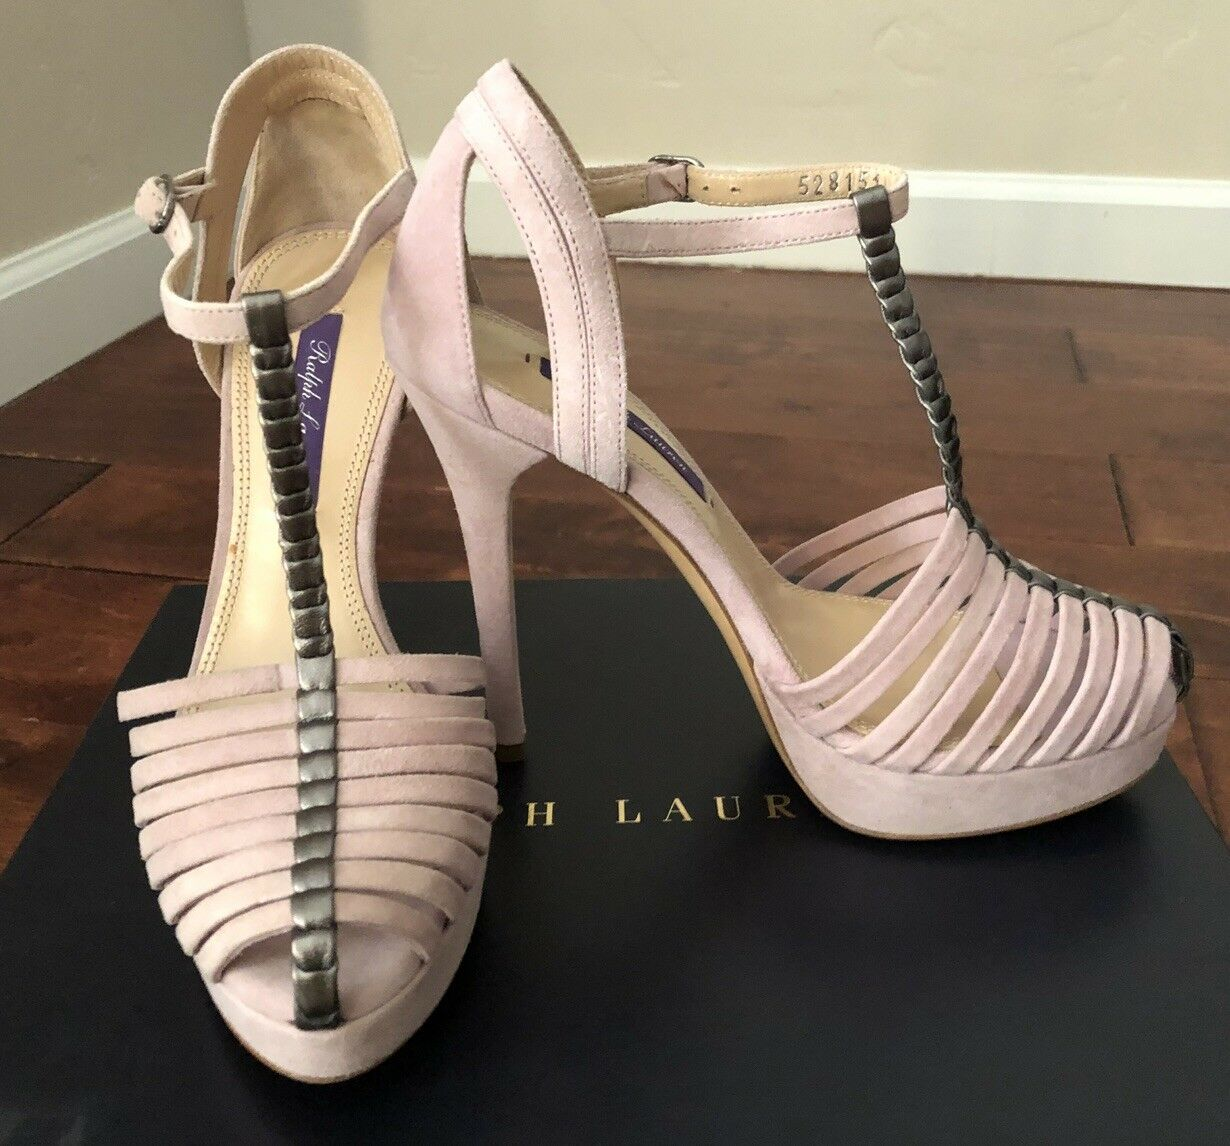 nuovo di marca NIB  795 RALPH LAUREN JEAMA JEAMA JEAMA SUEDE COLLECTION HEELS, SZ 36, MADE IN ITALY  outlet online